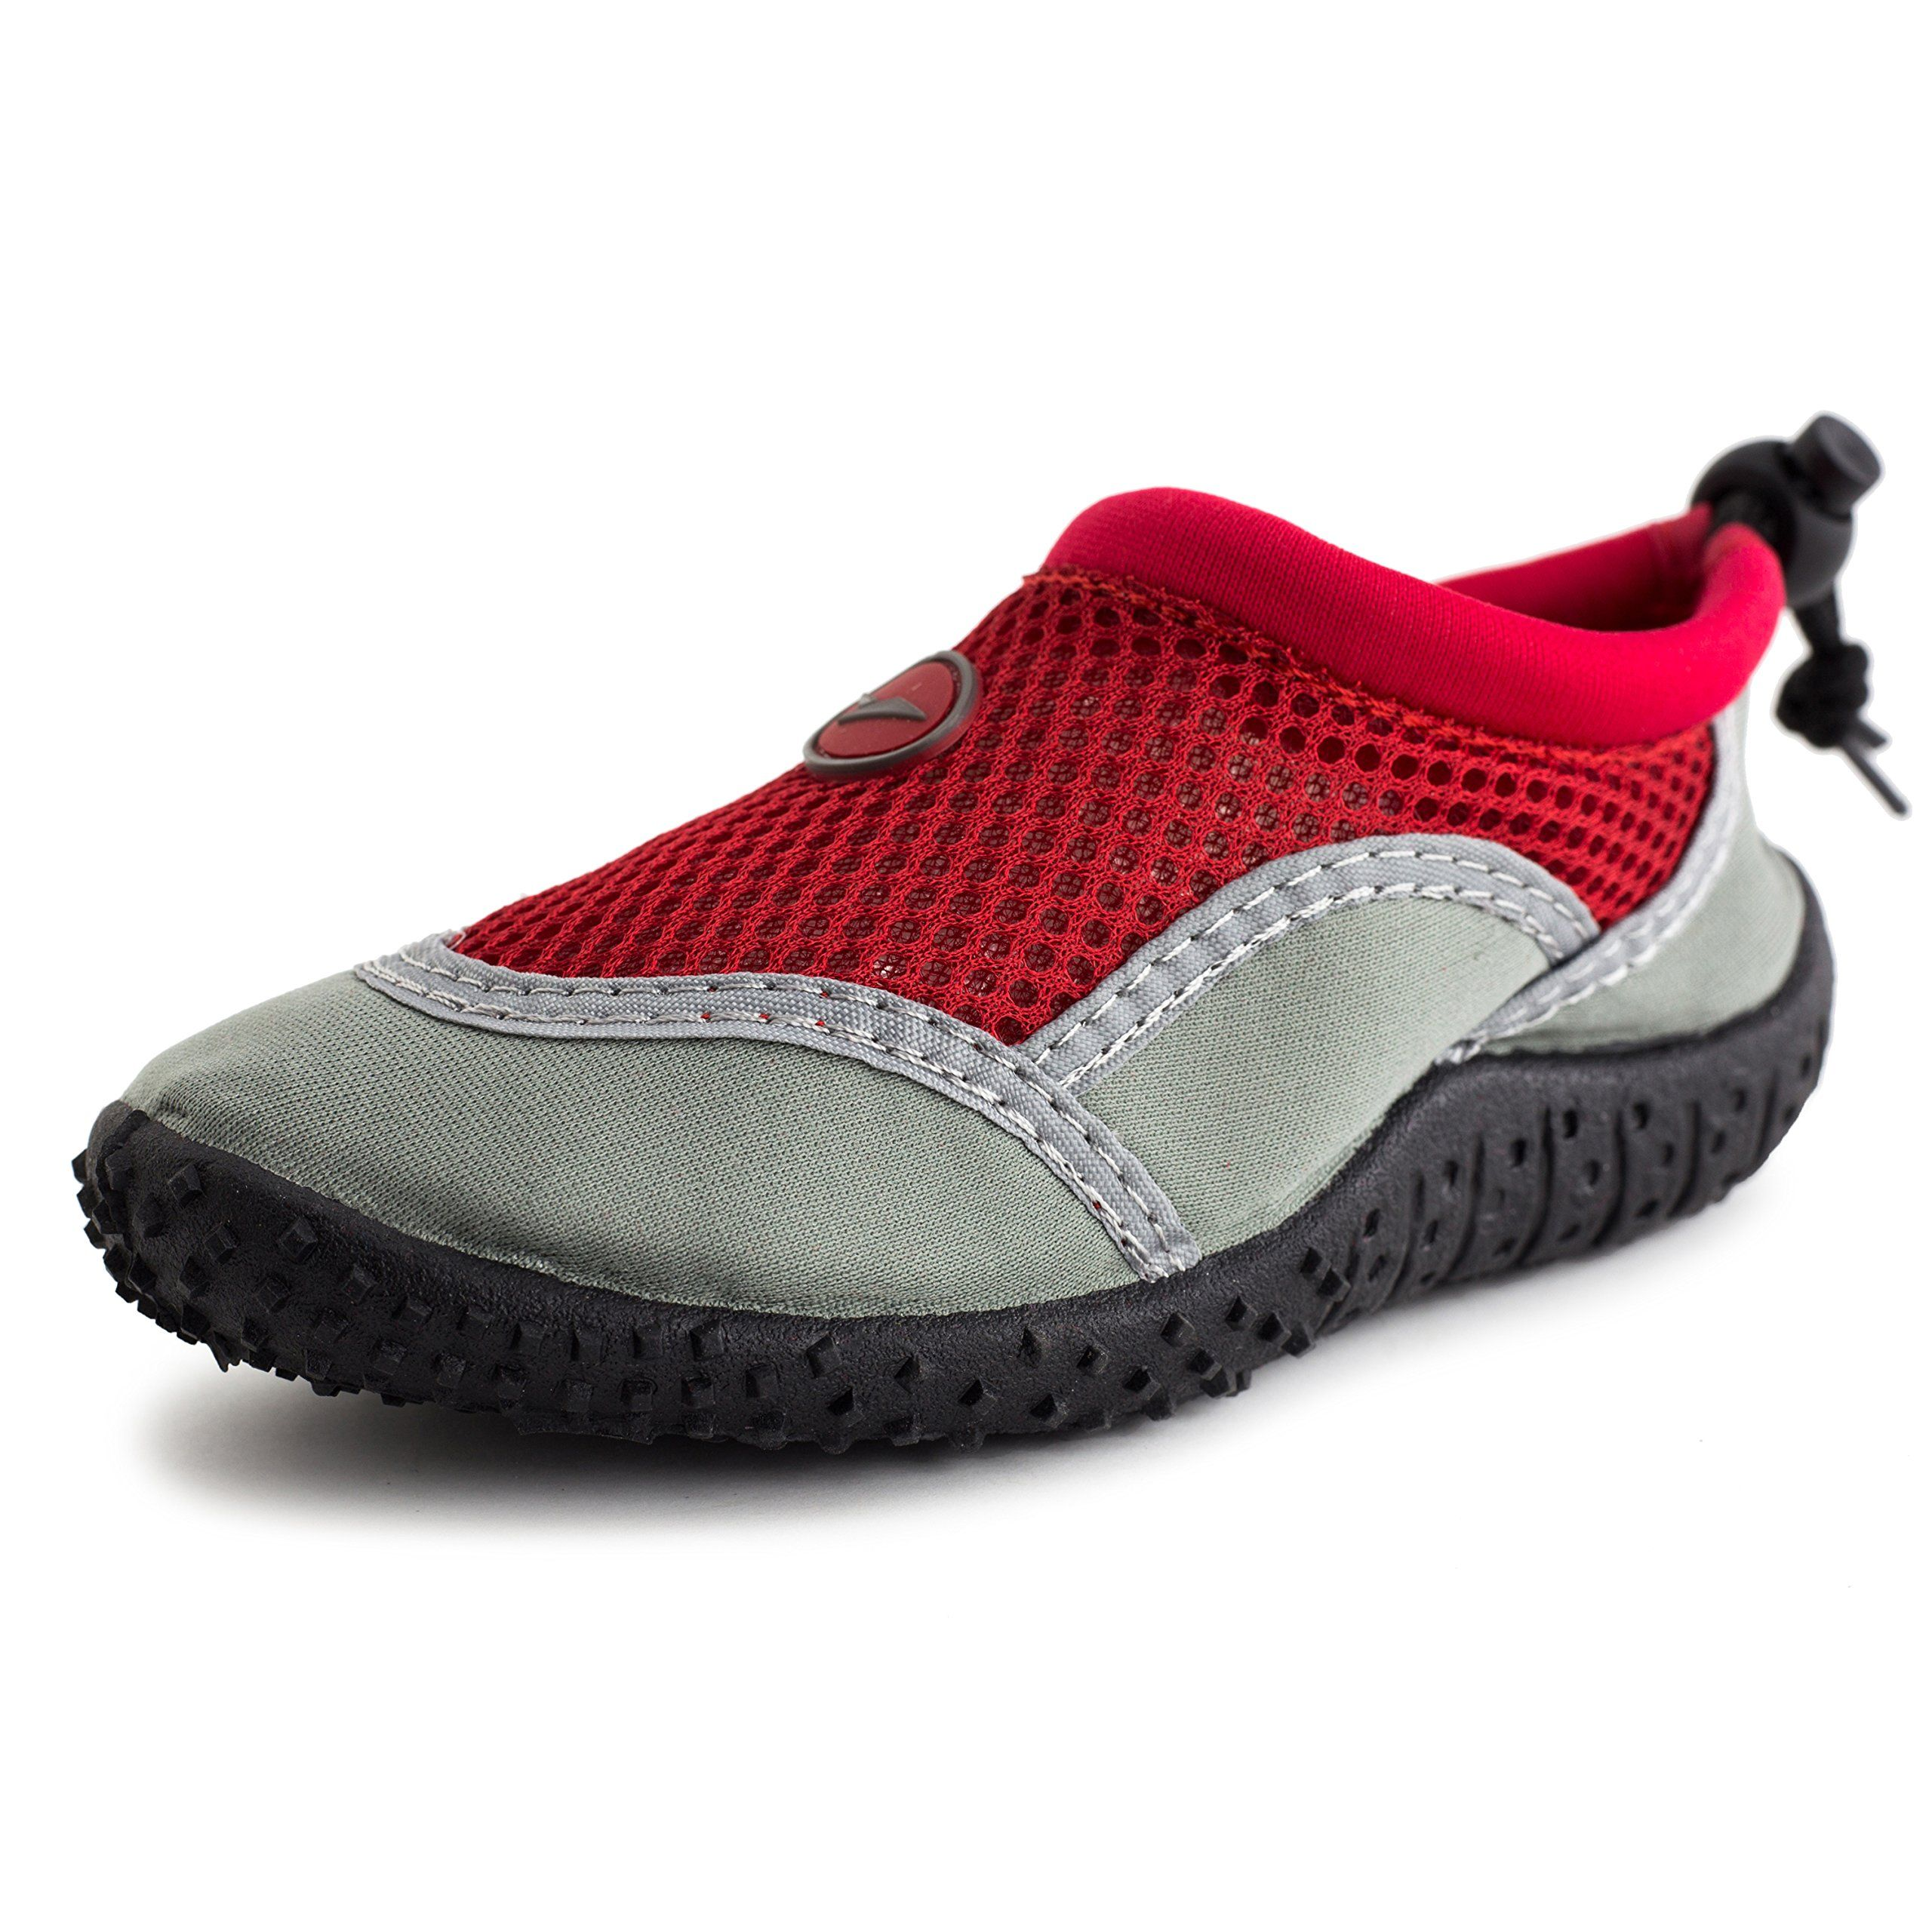 S.C.I.I Boys Girls Aqua Water Shoes Red 3 M US Little Kid. Medium ...